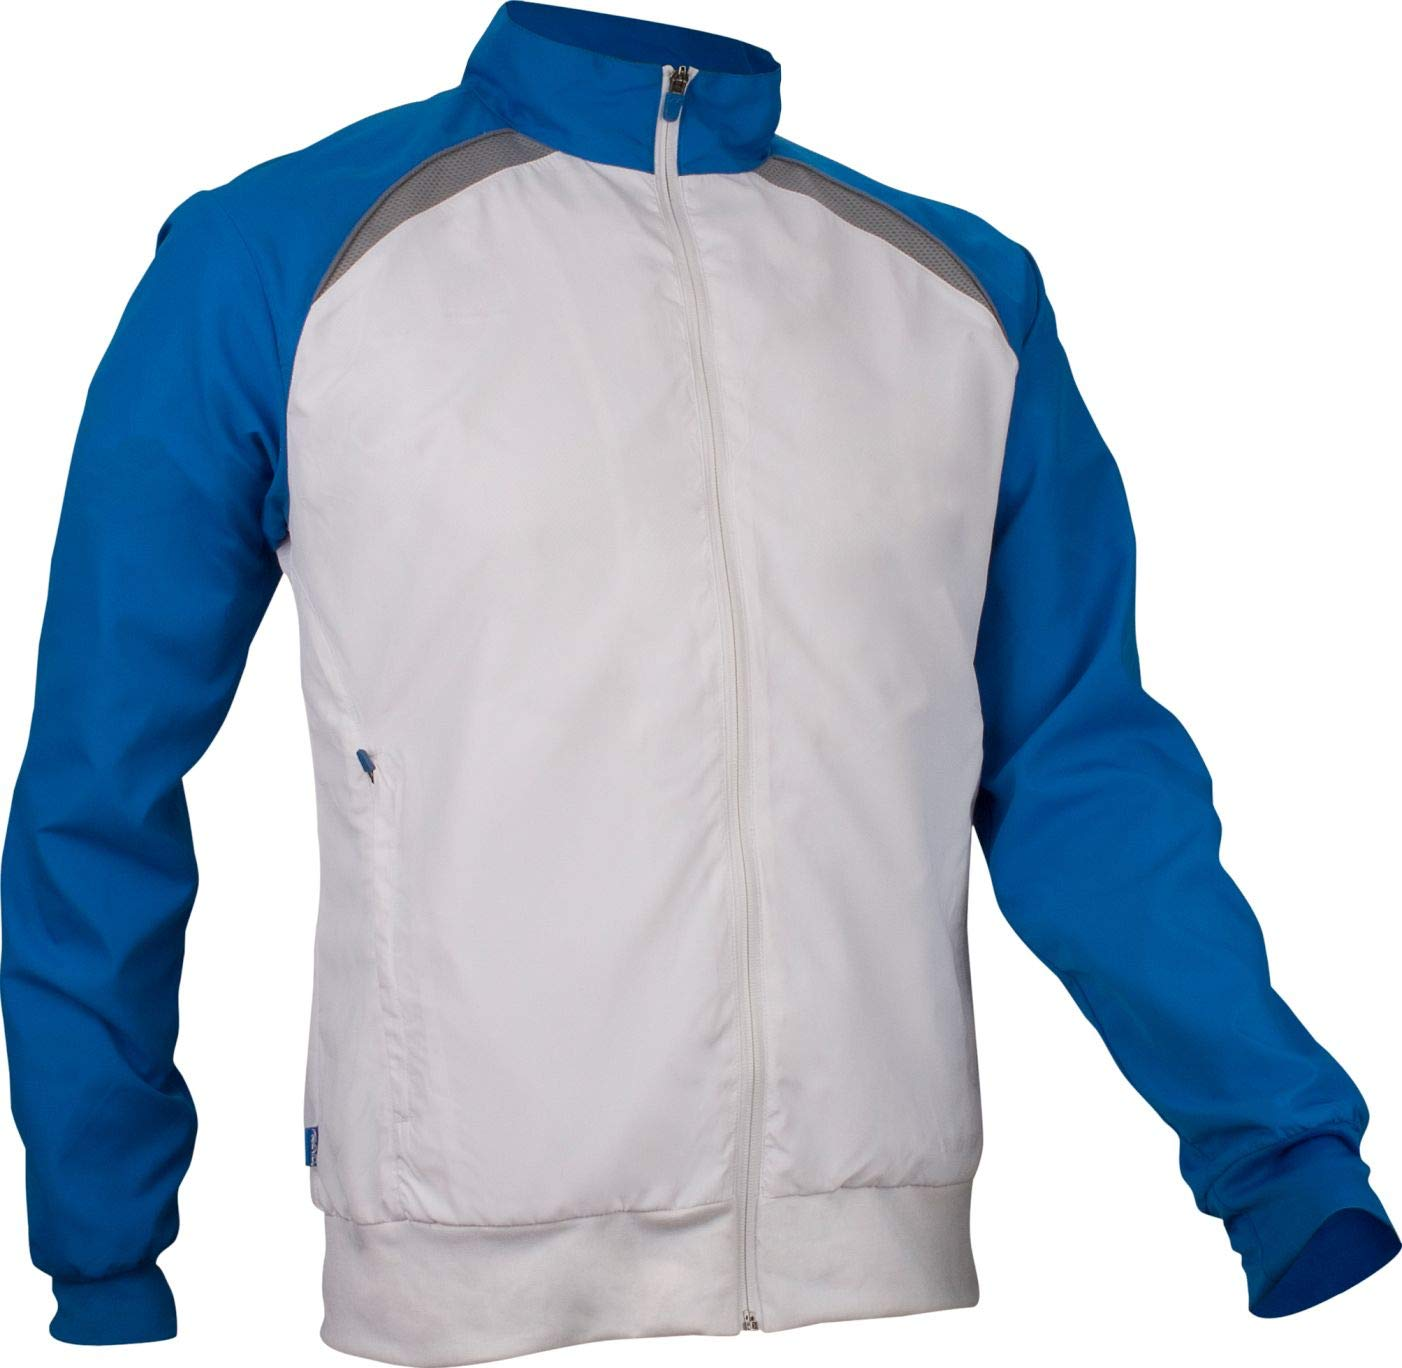 Avento Boys 33MF Sports Jacket Schreuders Sports